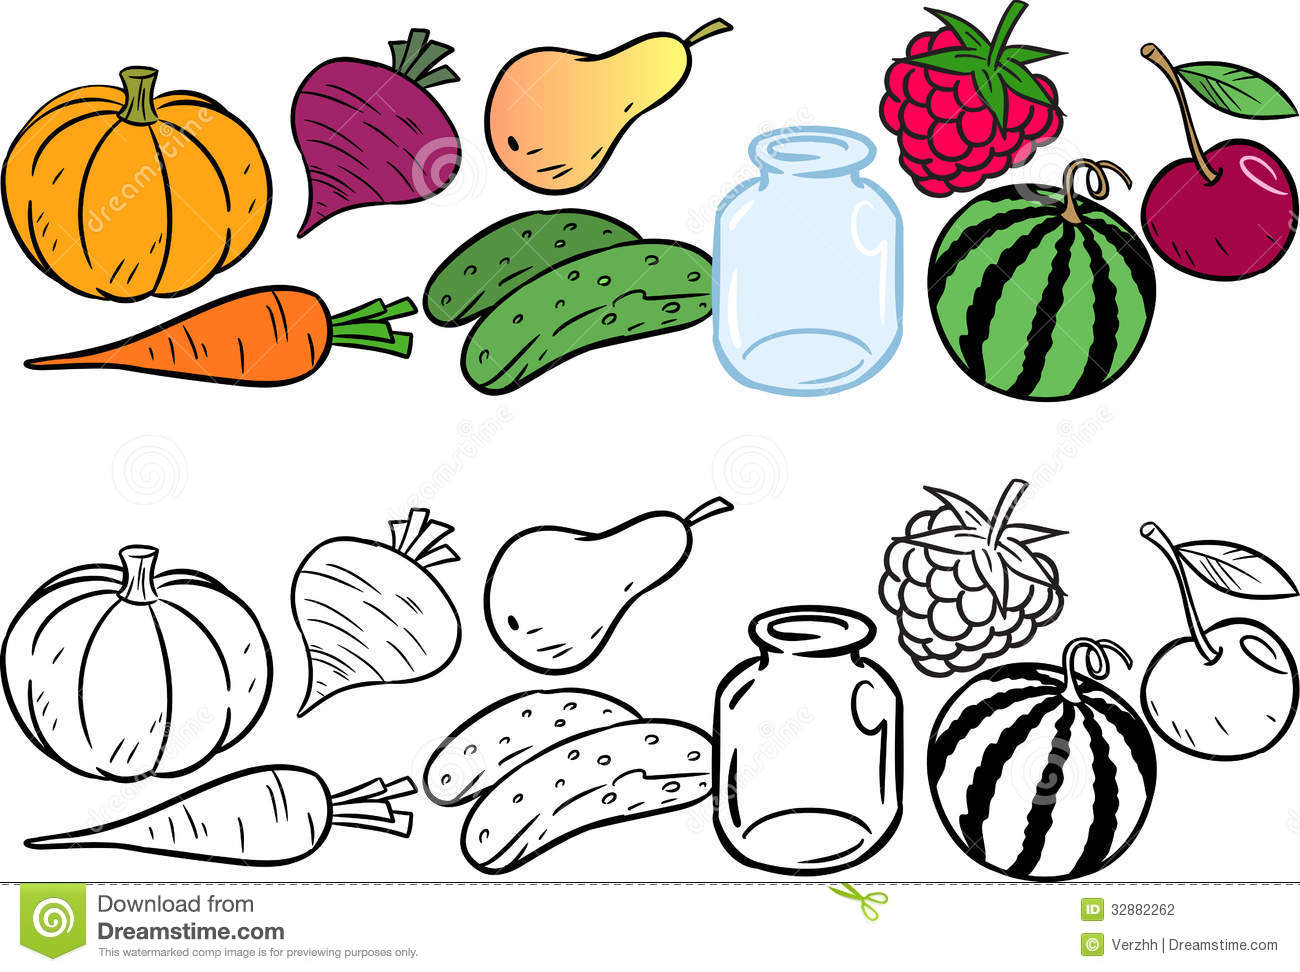 - Coloring With Vegetables And Fruits Stock Vector - Illustration Of